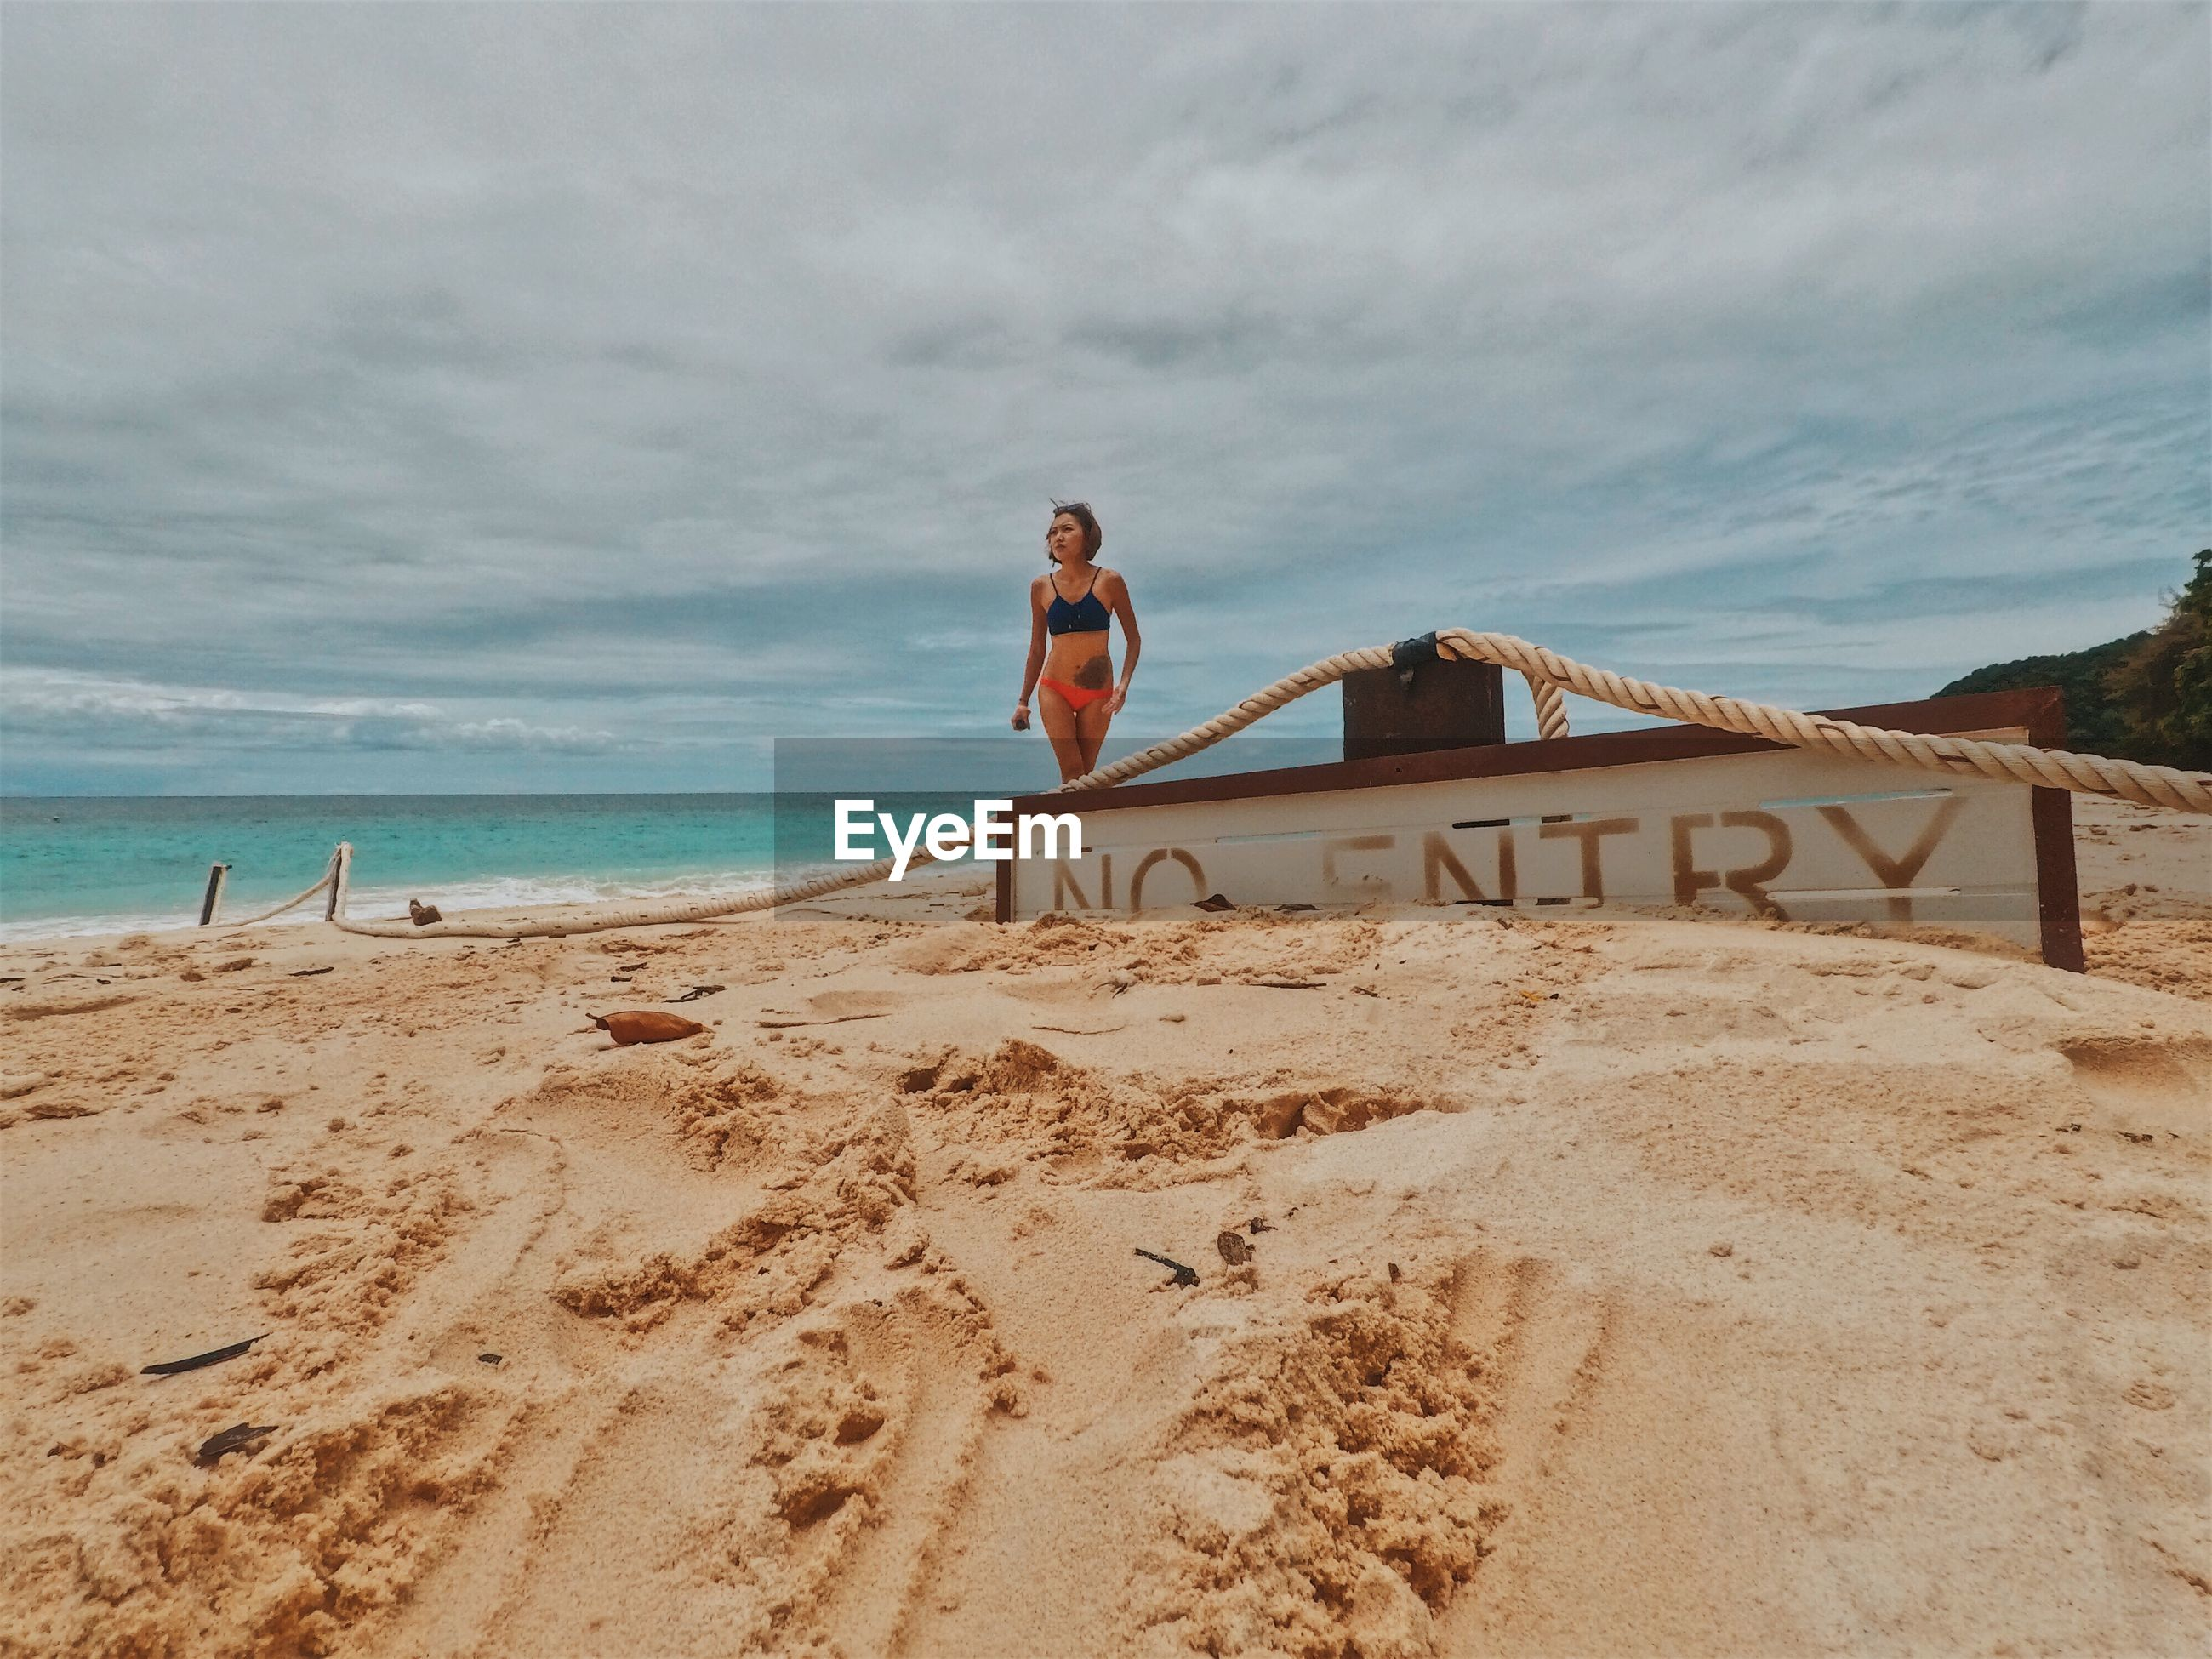 Woman in bikini walking on shore by no entry text at beach against cloudy sky